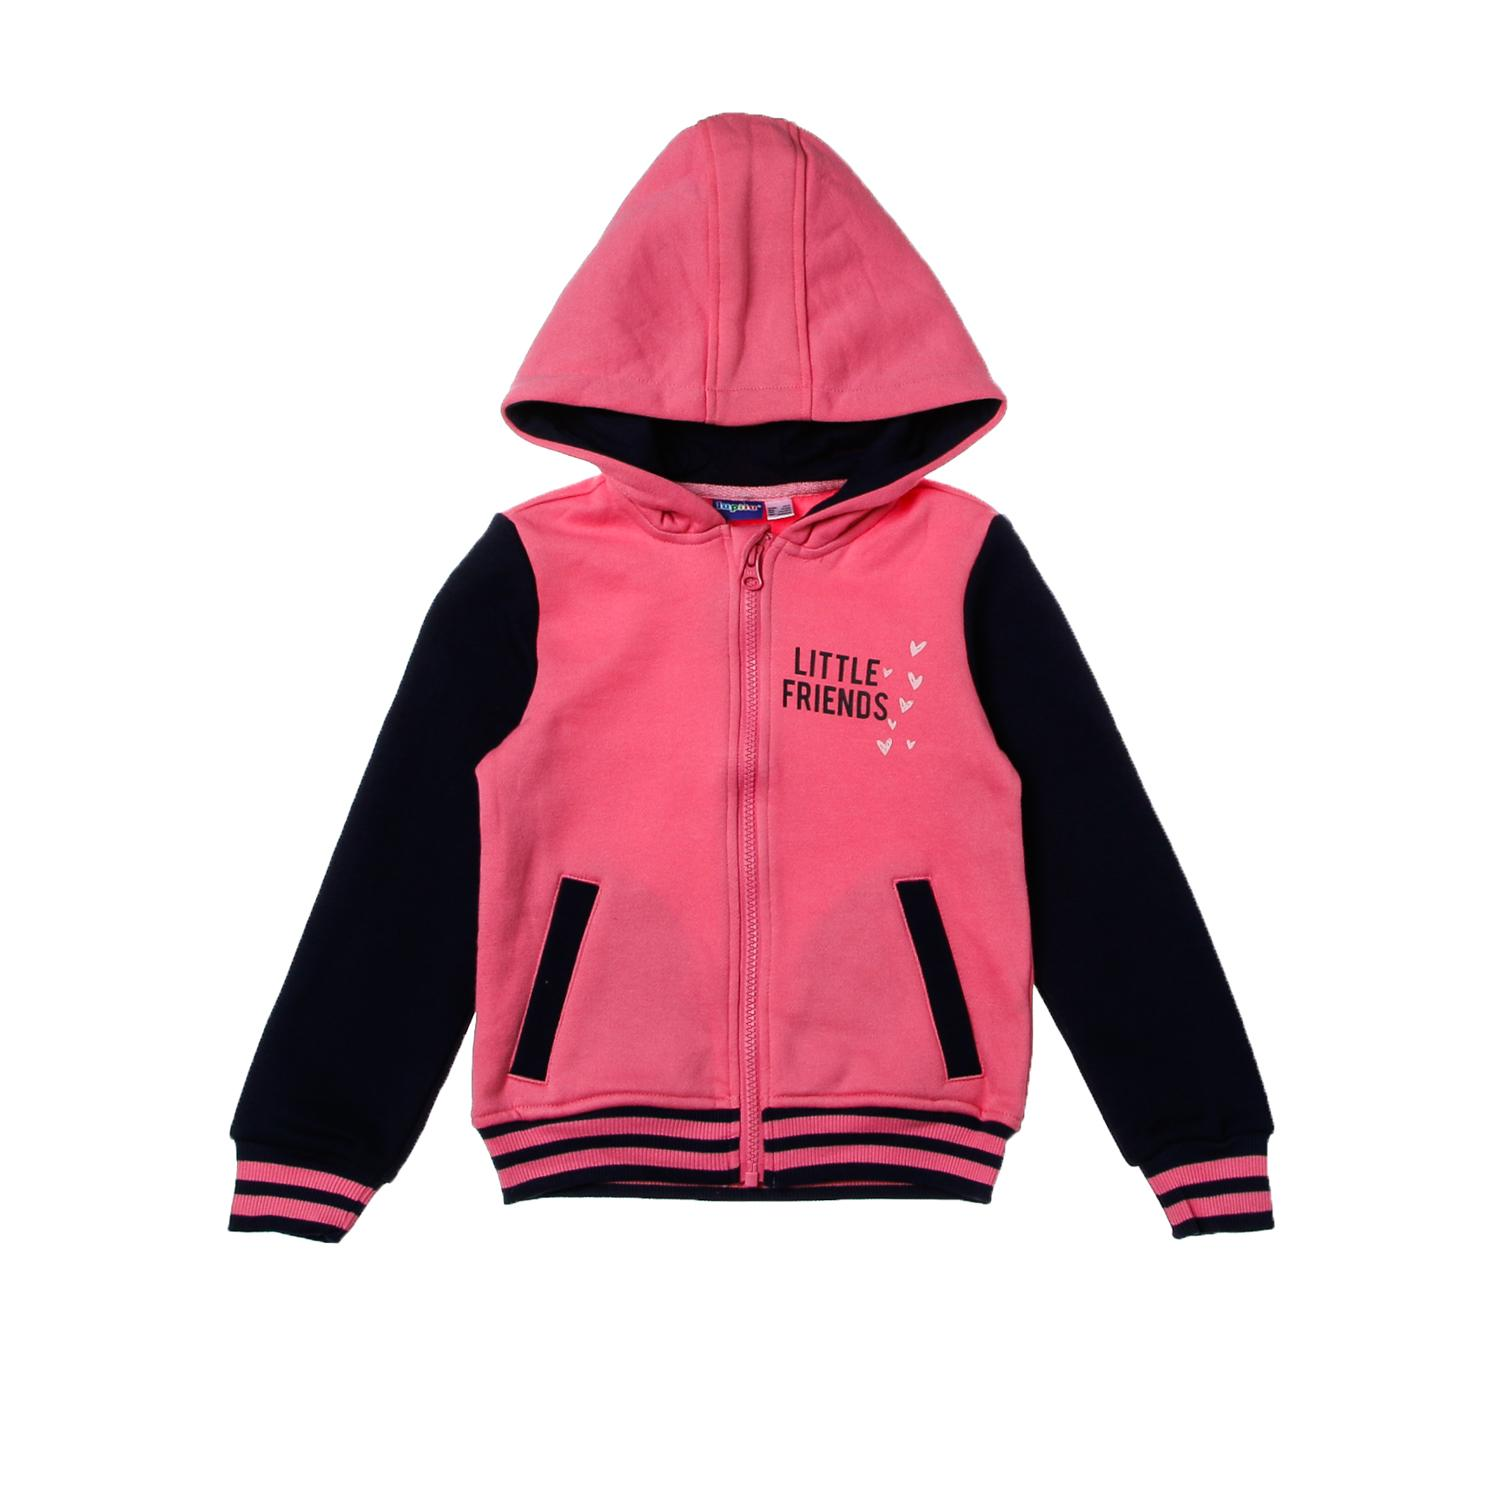 2ddee7a6ef5b Girls Jackets for sale - Girls Baby Coats online brands